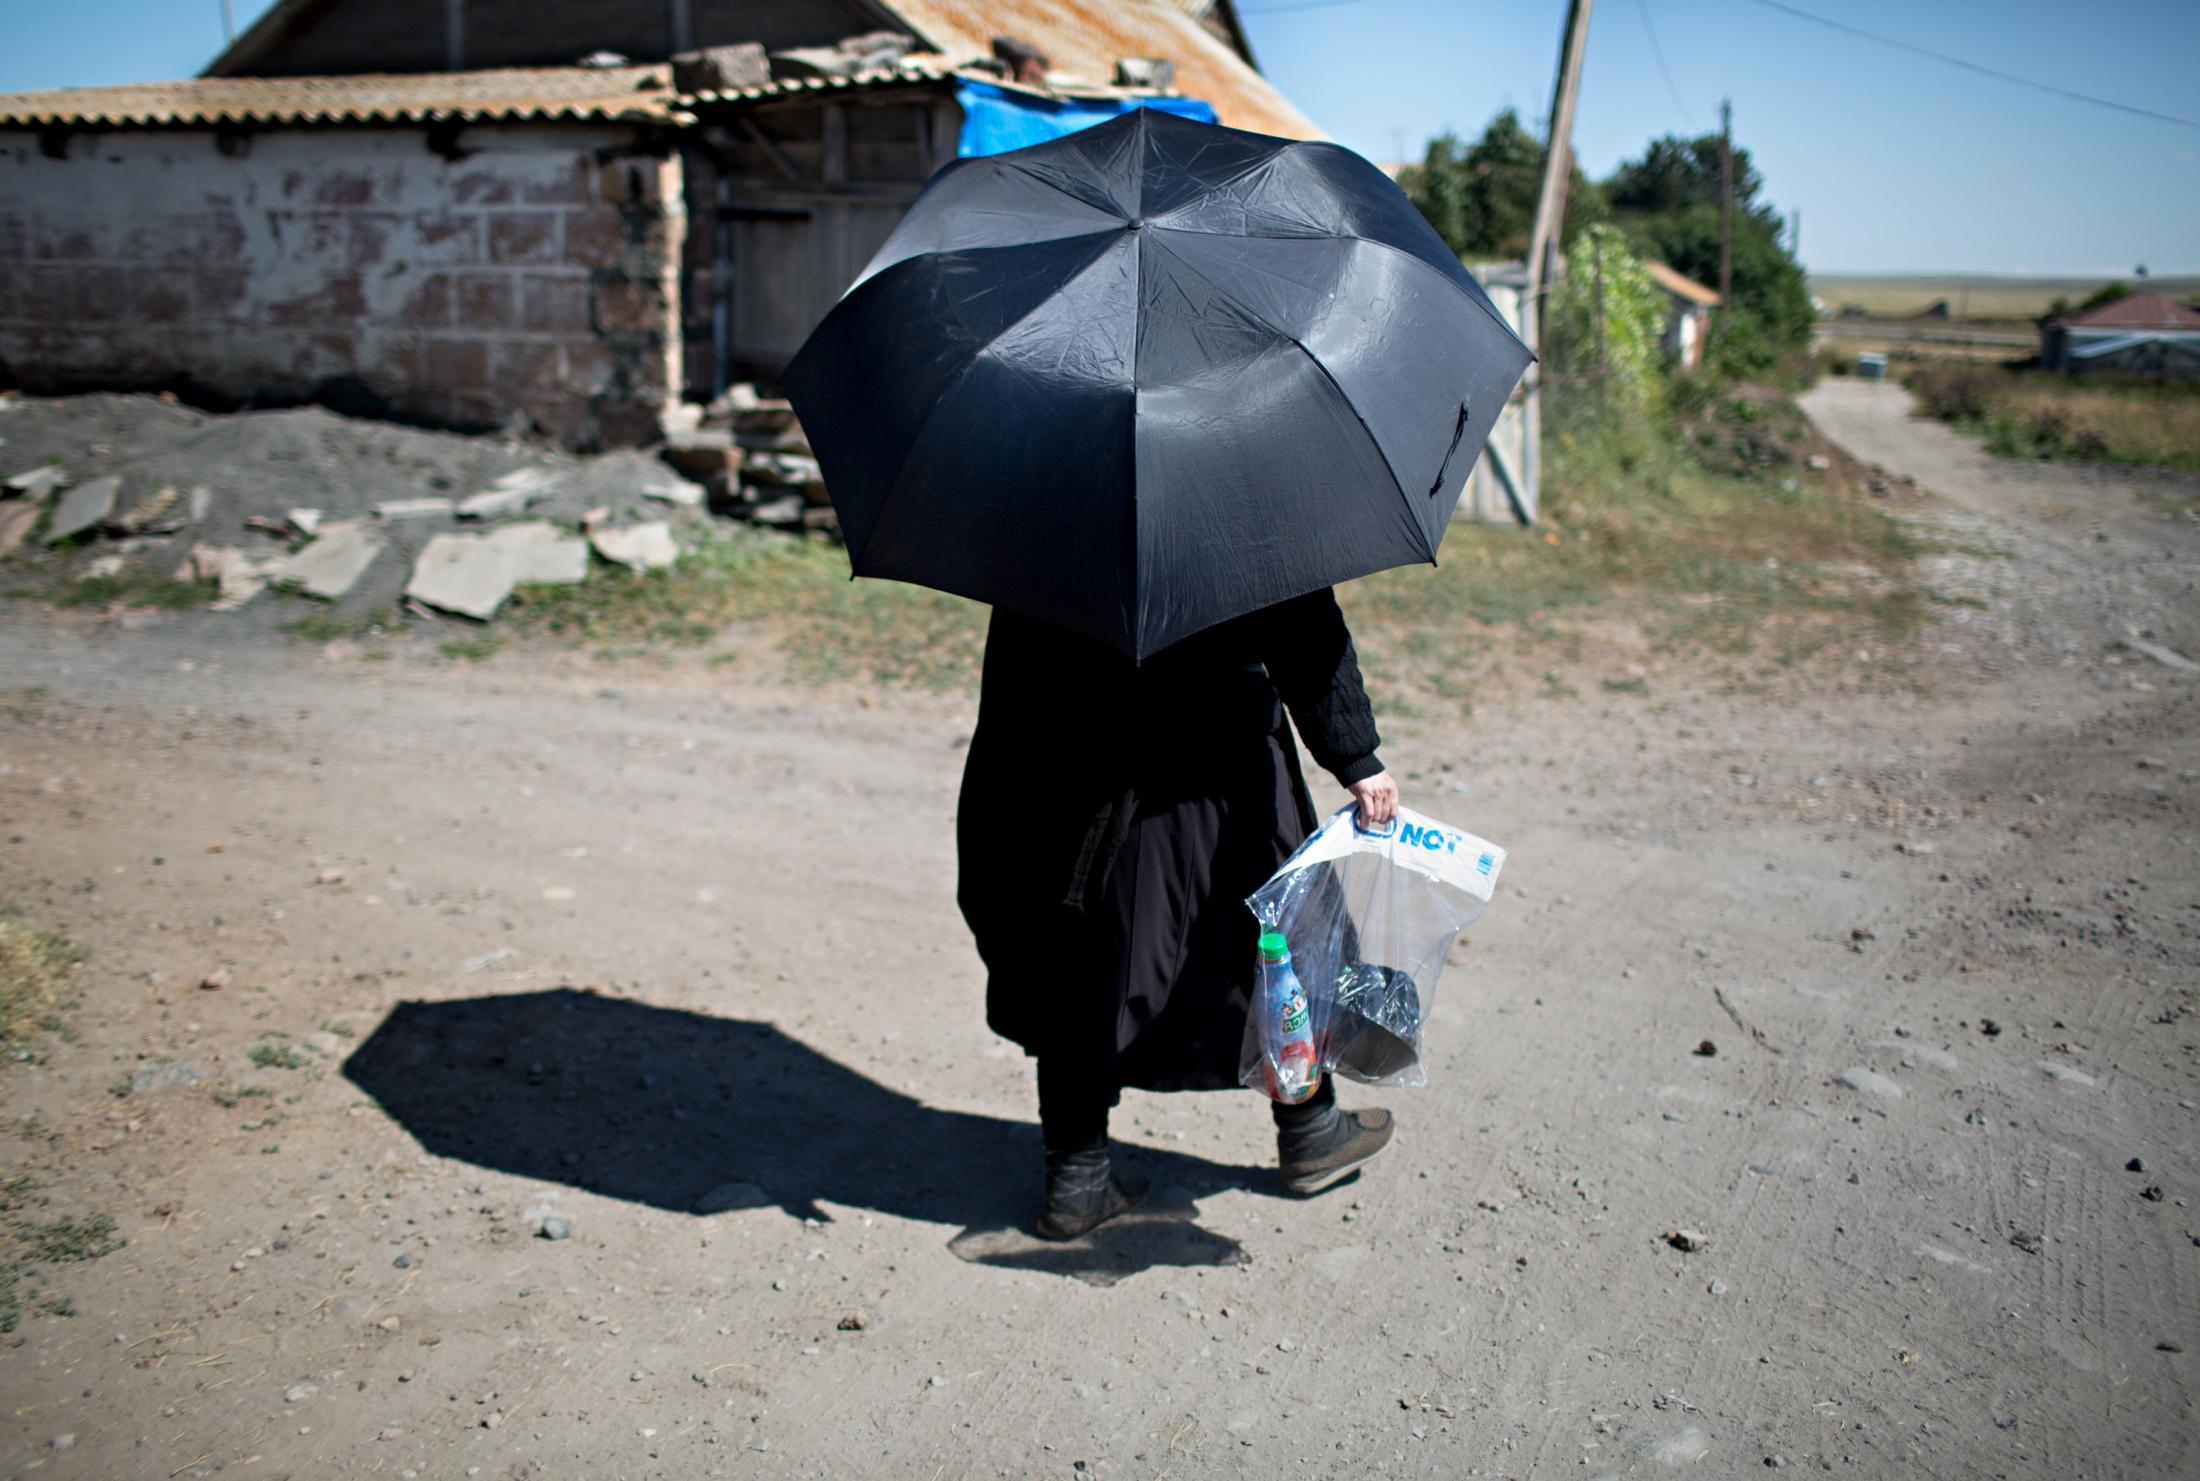 A Muslim woman returns from shopping while protecting herself against the sun with an umbrella.